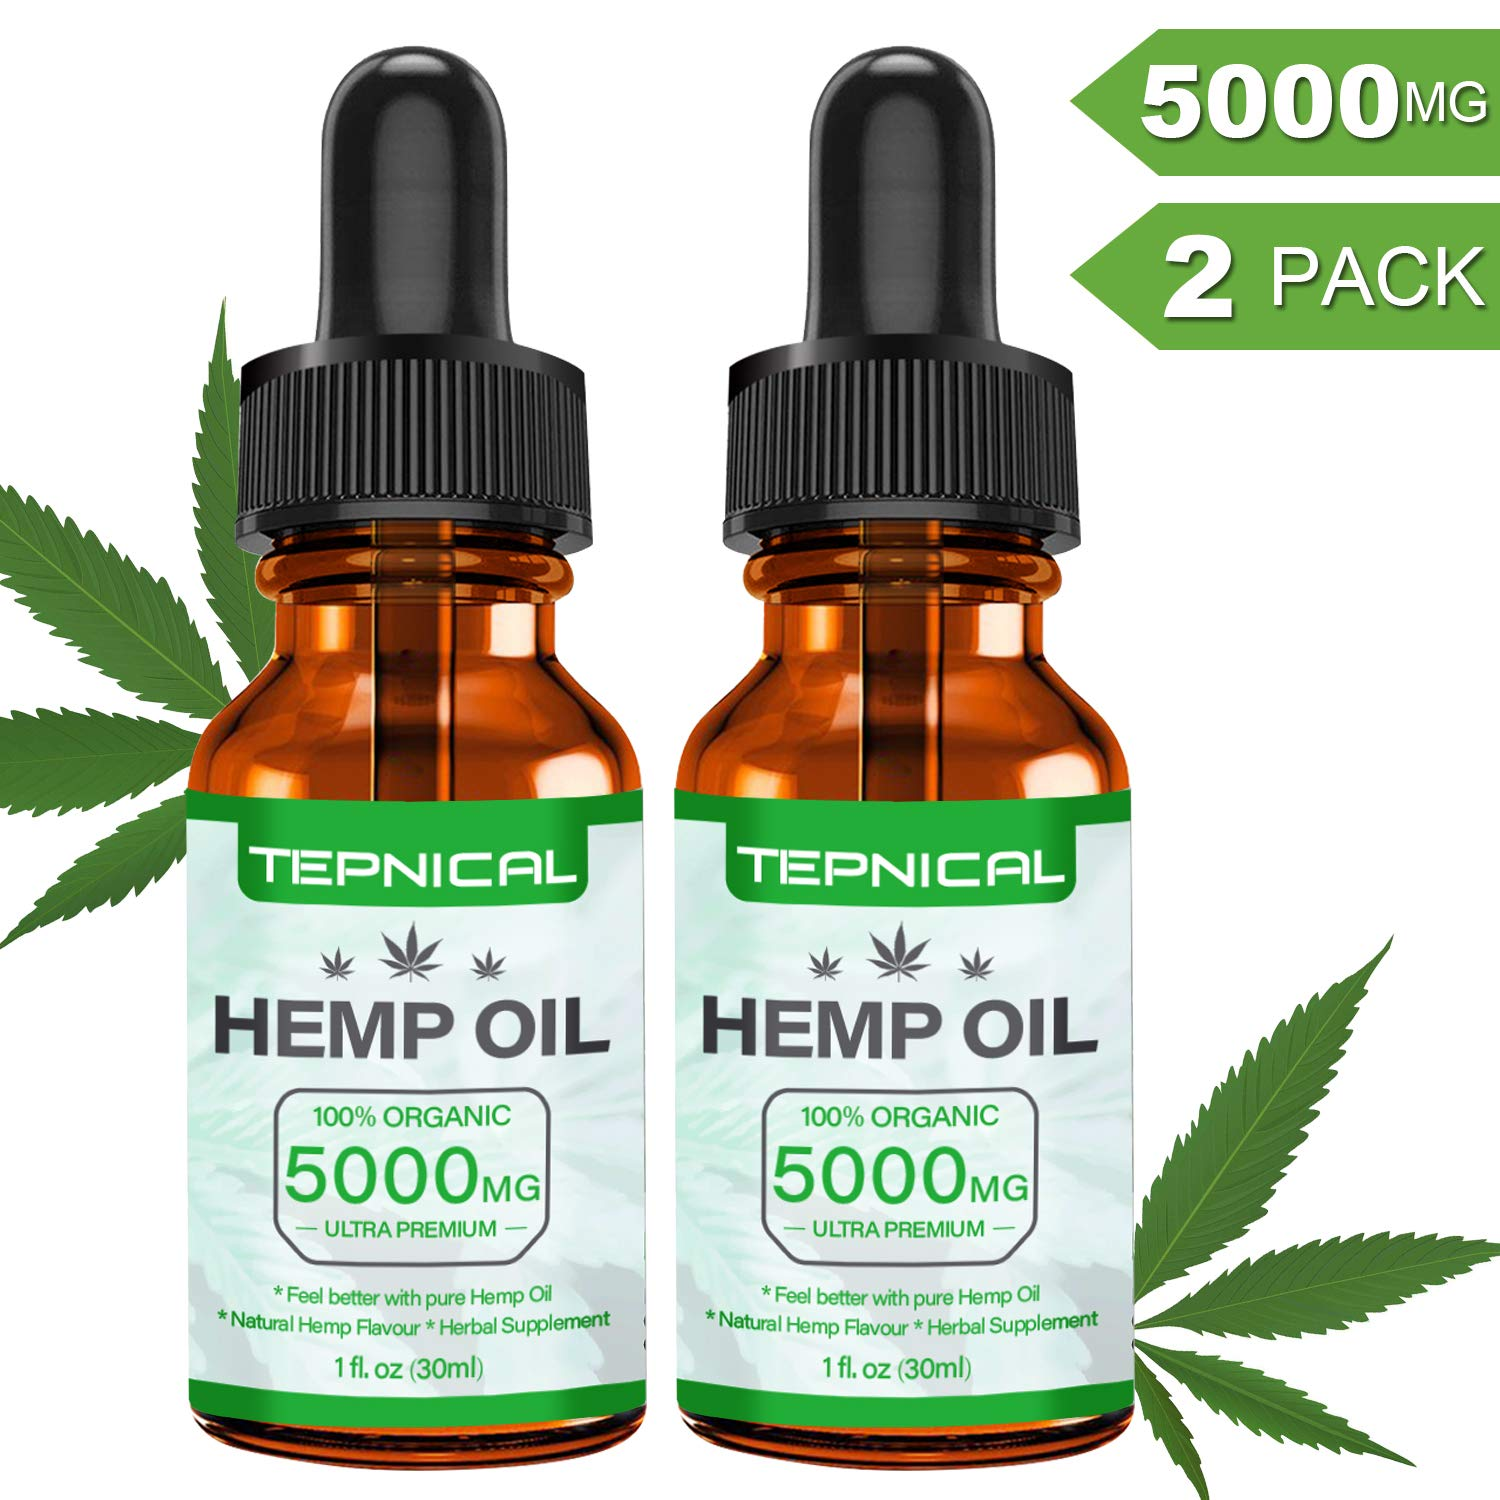 Hemp Oil with 5000mg of Organic Hemp Extract for Pain, Anxiety & Stress Relief - 100% Natural Hemp Oil Drops, Helps with Sleep, Skin & Hair(2-Pack/60ML) by TEPNICAL